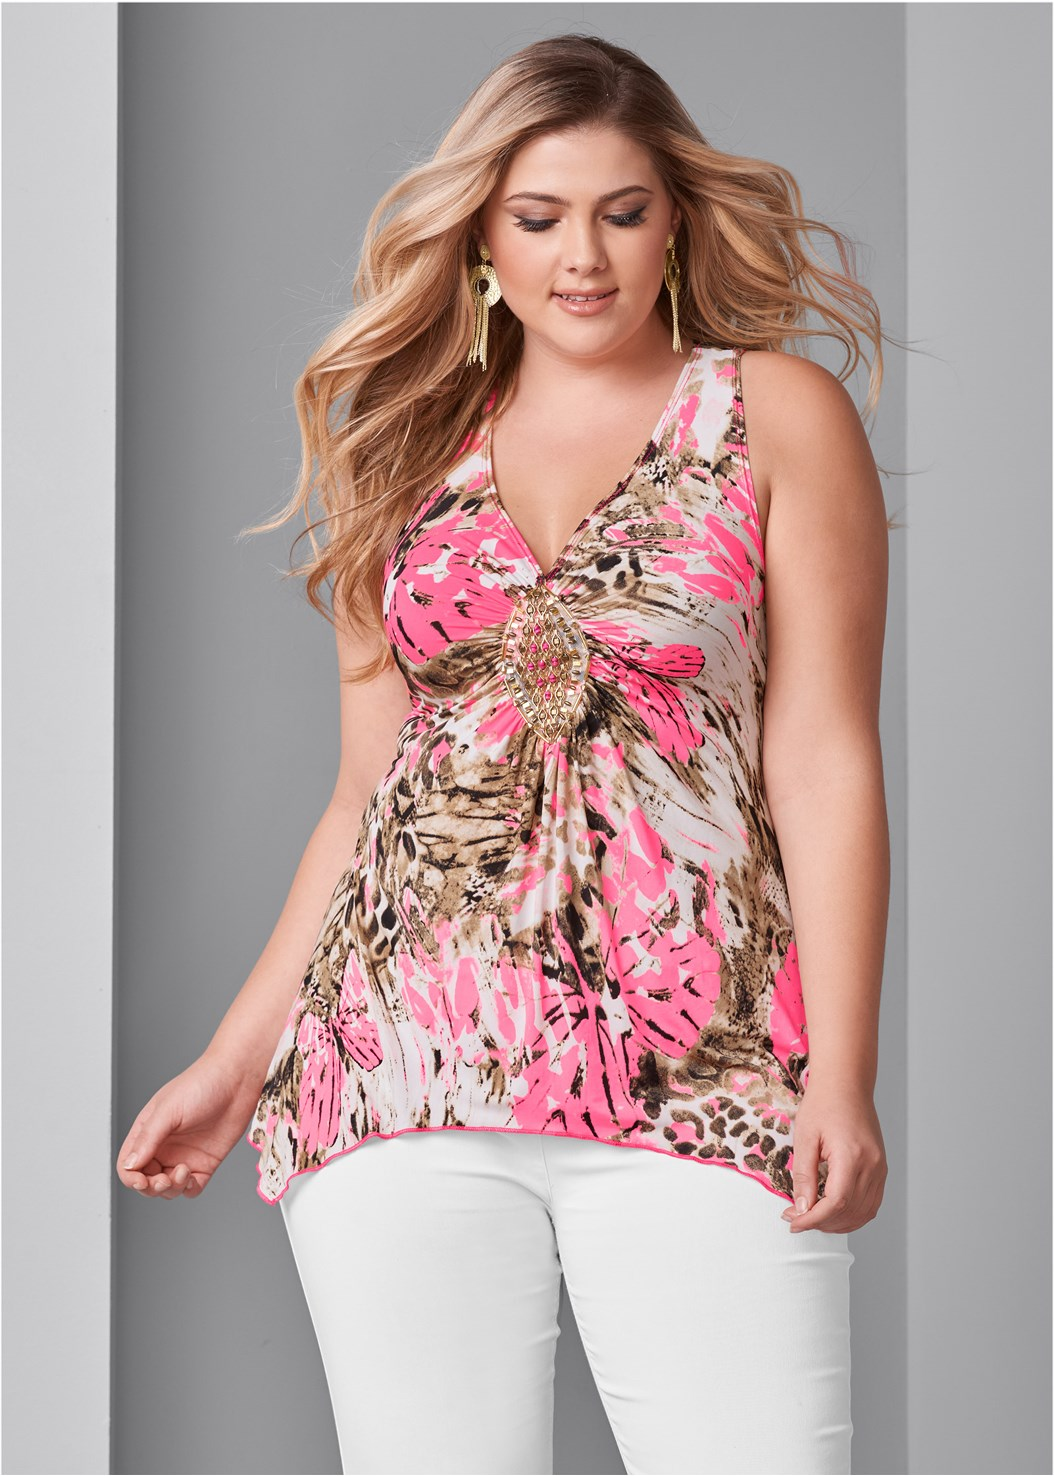 Embellished Print Top,Mid Rise Slimming Stretch Jeggings,Lace Bra Panty Set,High Heel Strappy Sandals